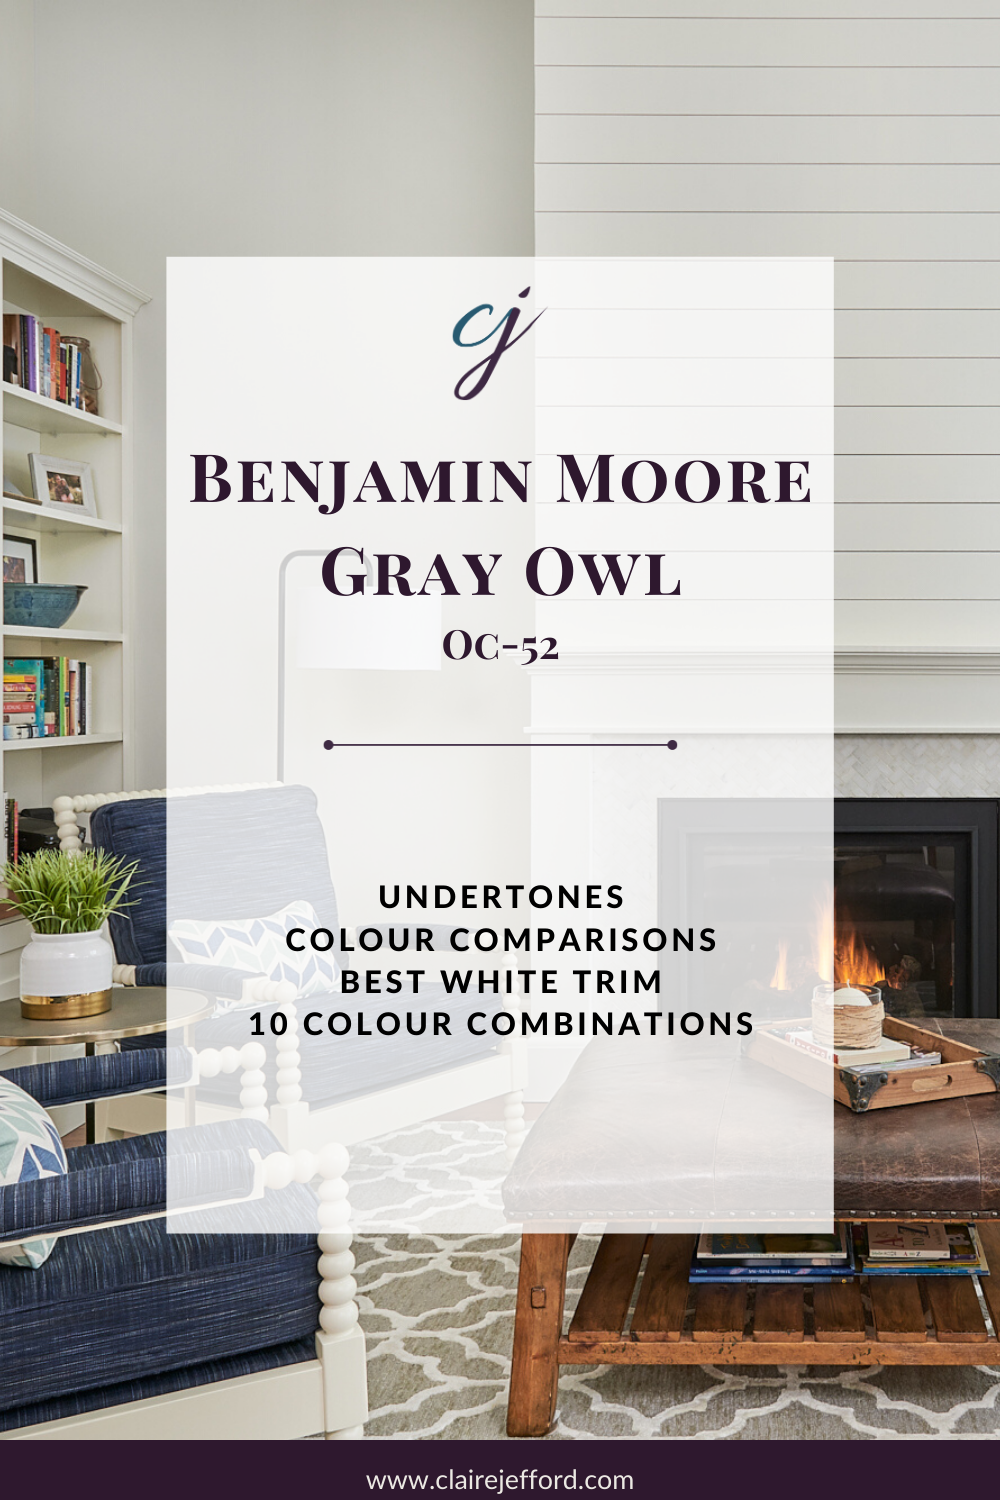 Gray Owl By Benjamin Moore Colour Review Claire Jefford,Antique Furniture Decorating With Antiques